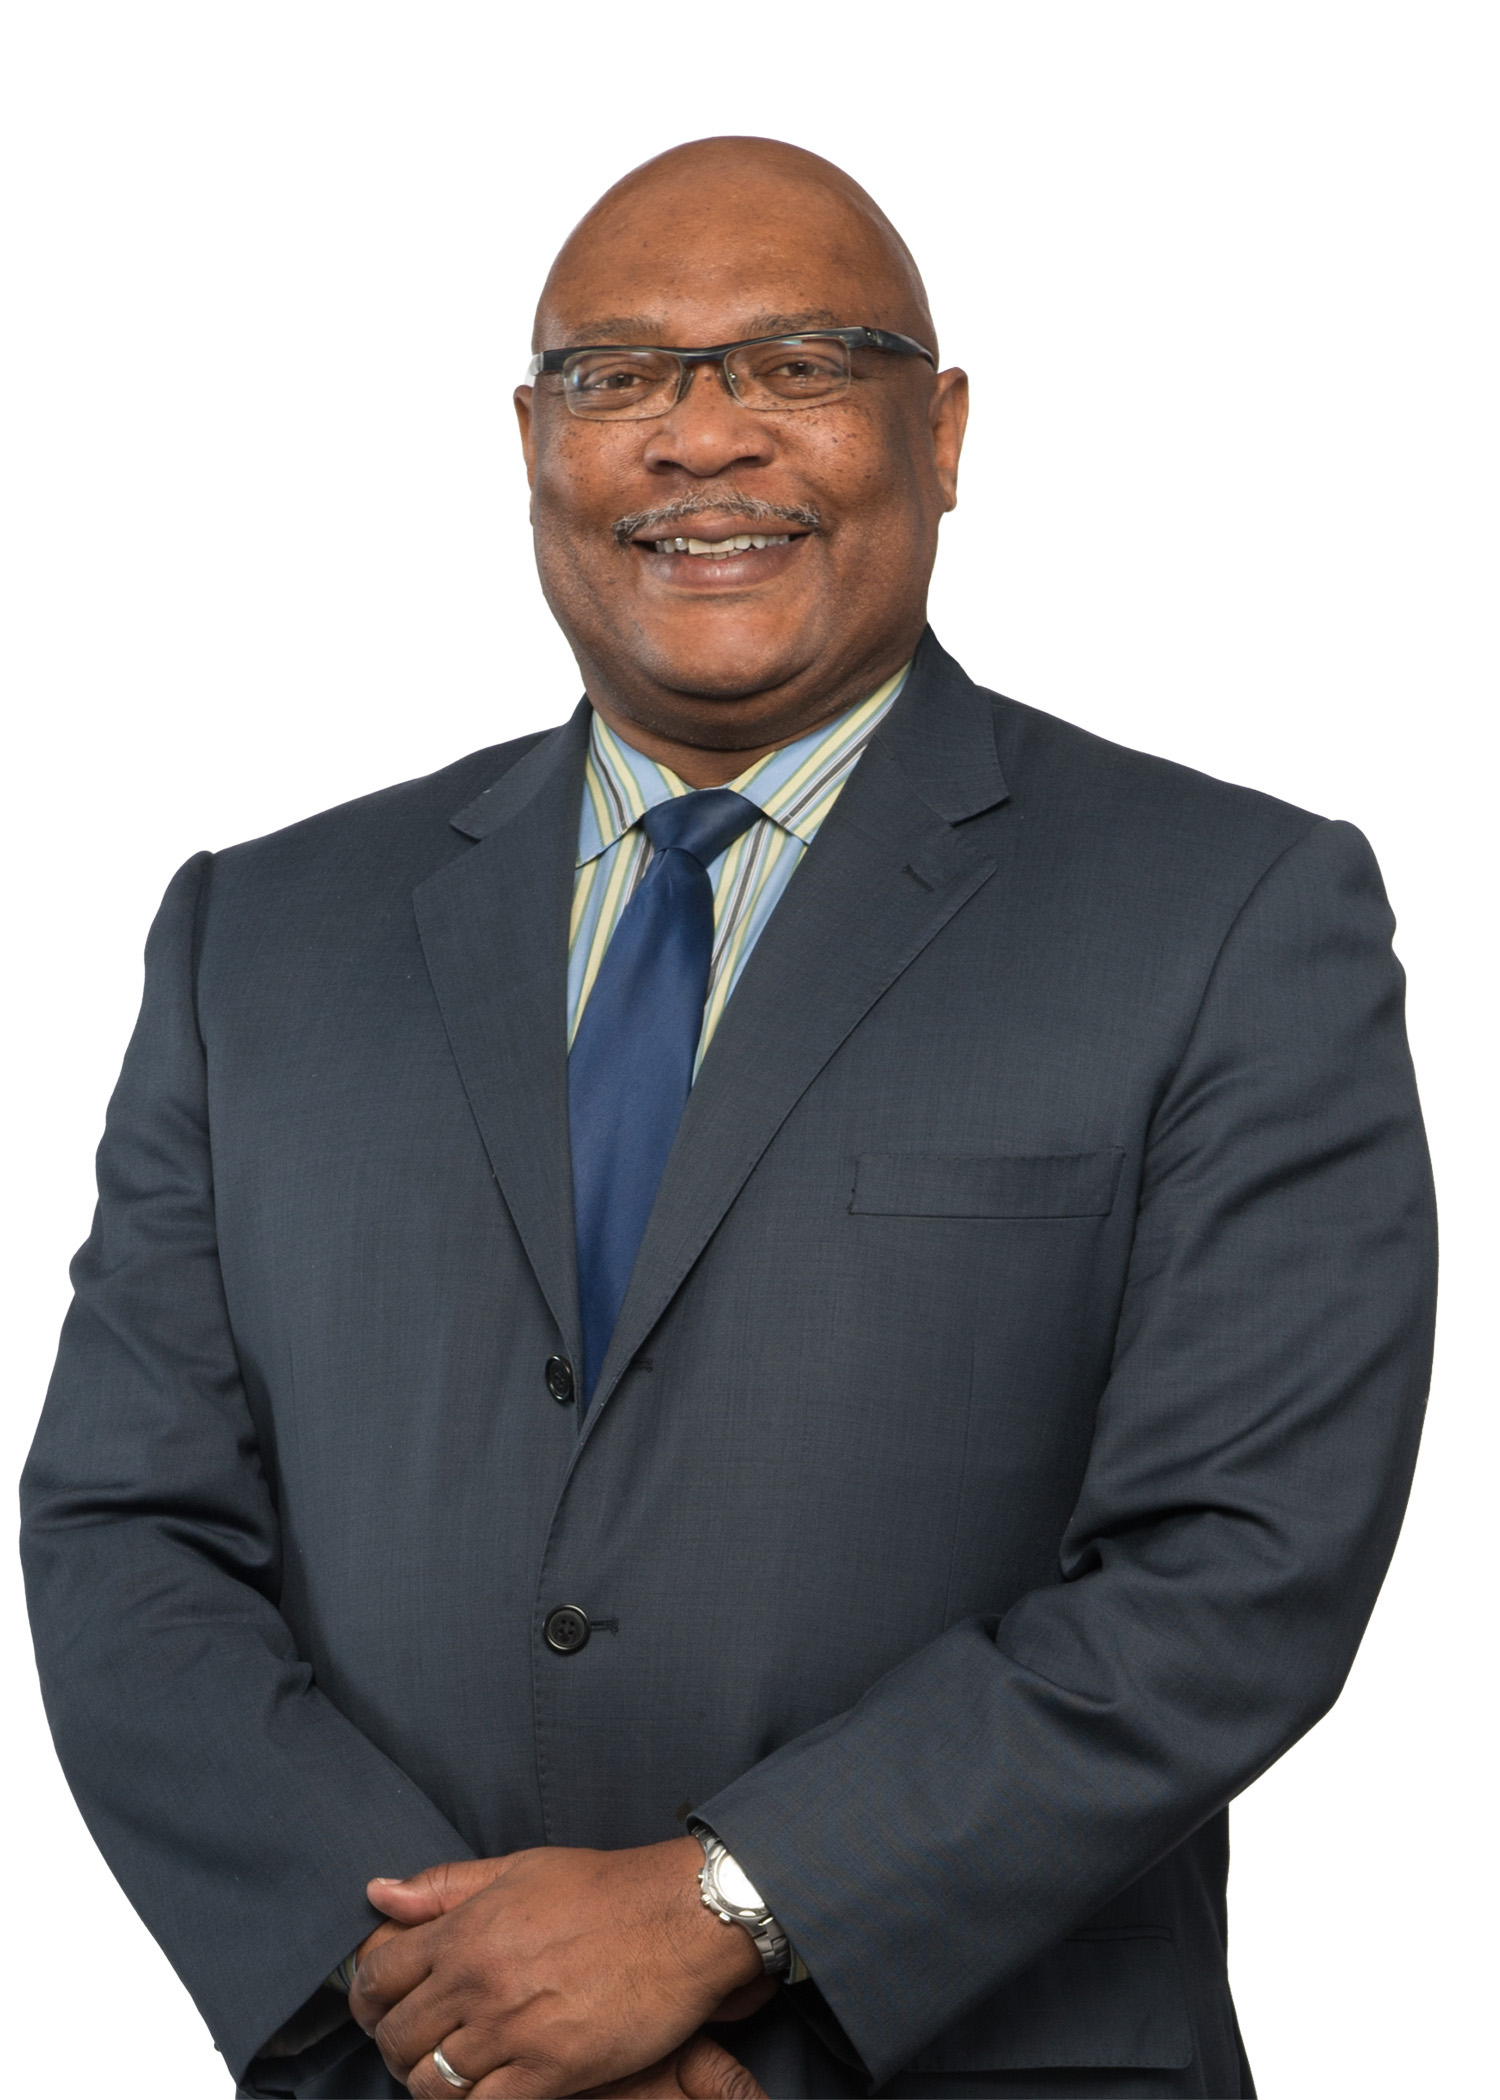 Hon. Dwight Jefferson